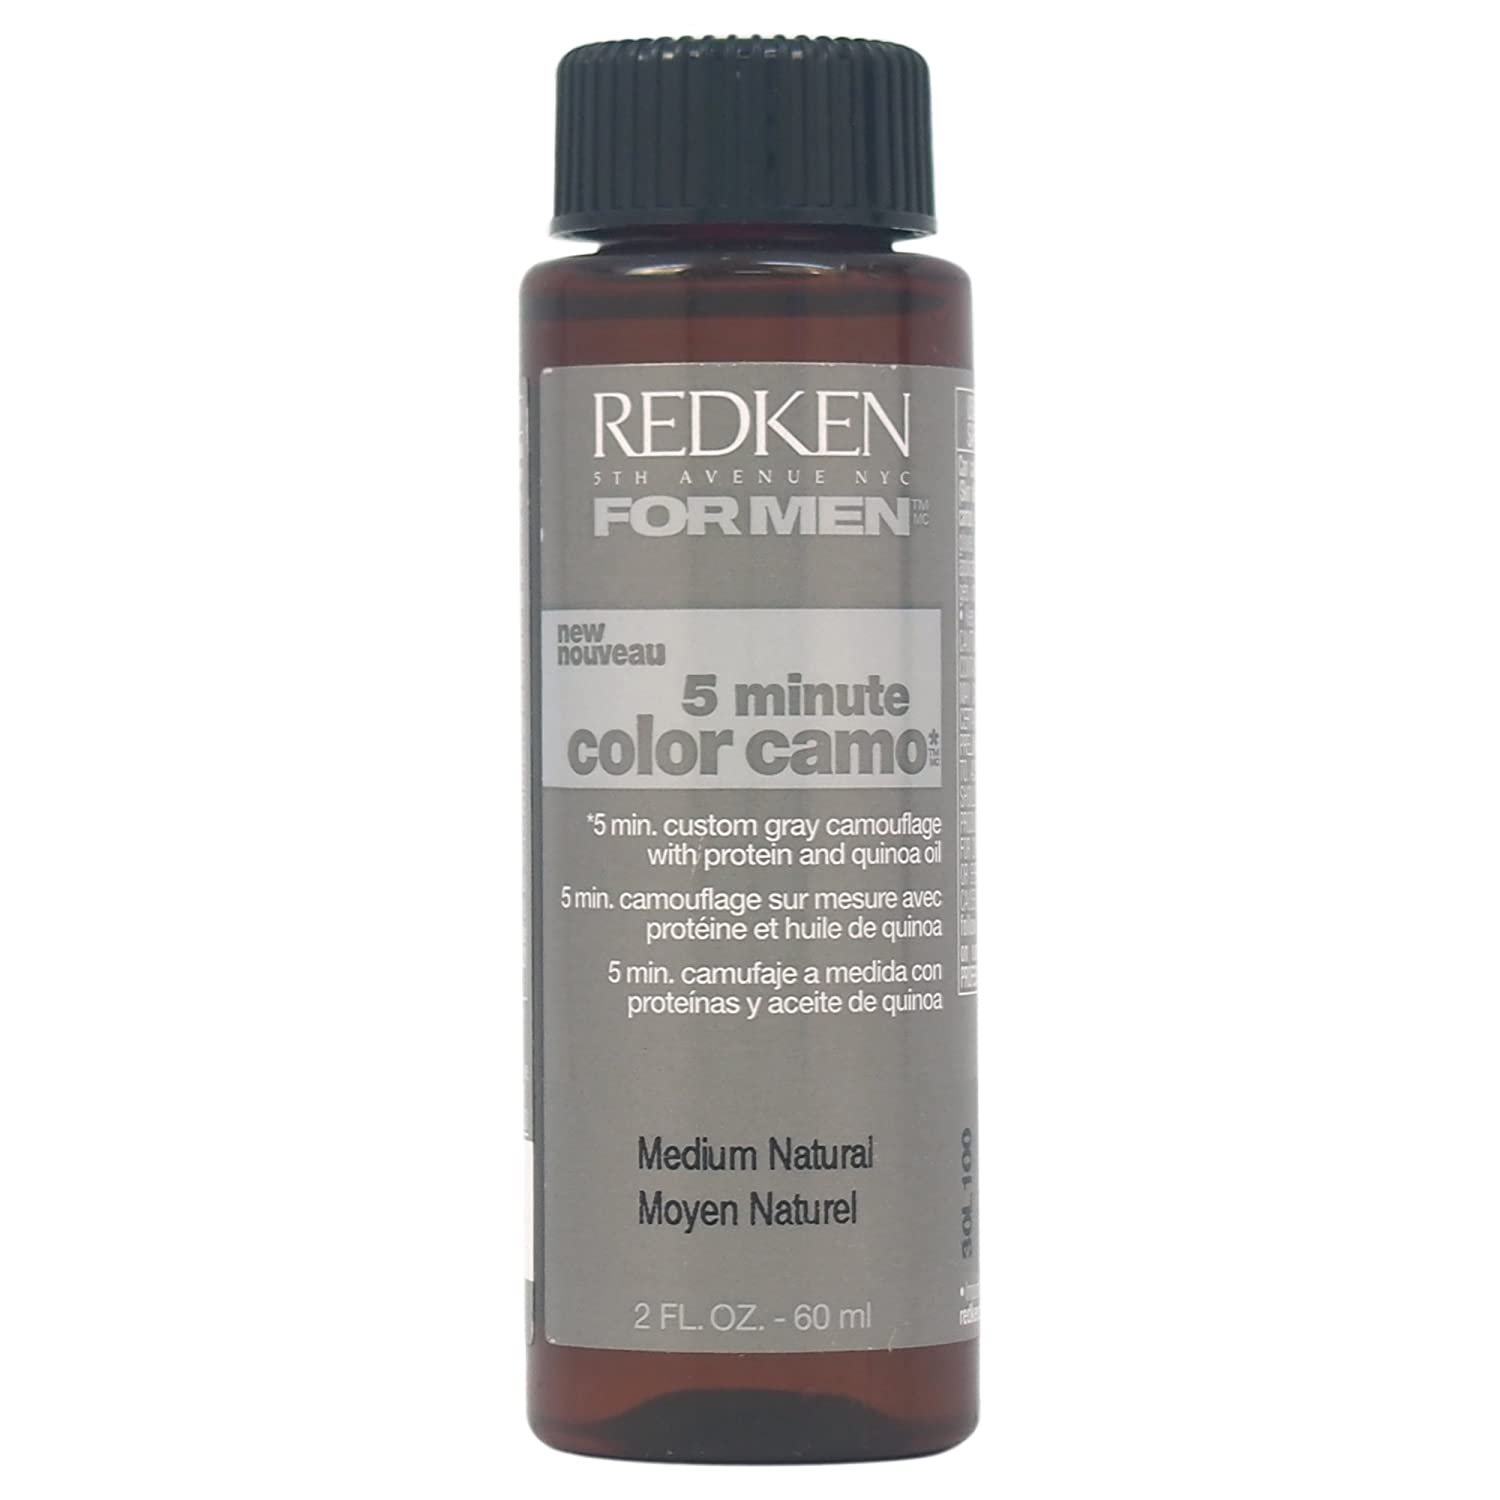 Colors may not represent actual product - Amazon Com Redken 5 Minute Camo Hair Color For Men Medium Natural 2 Ounce Beauty